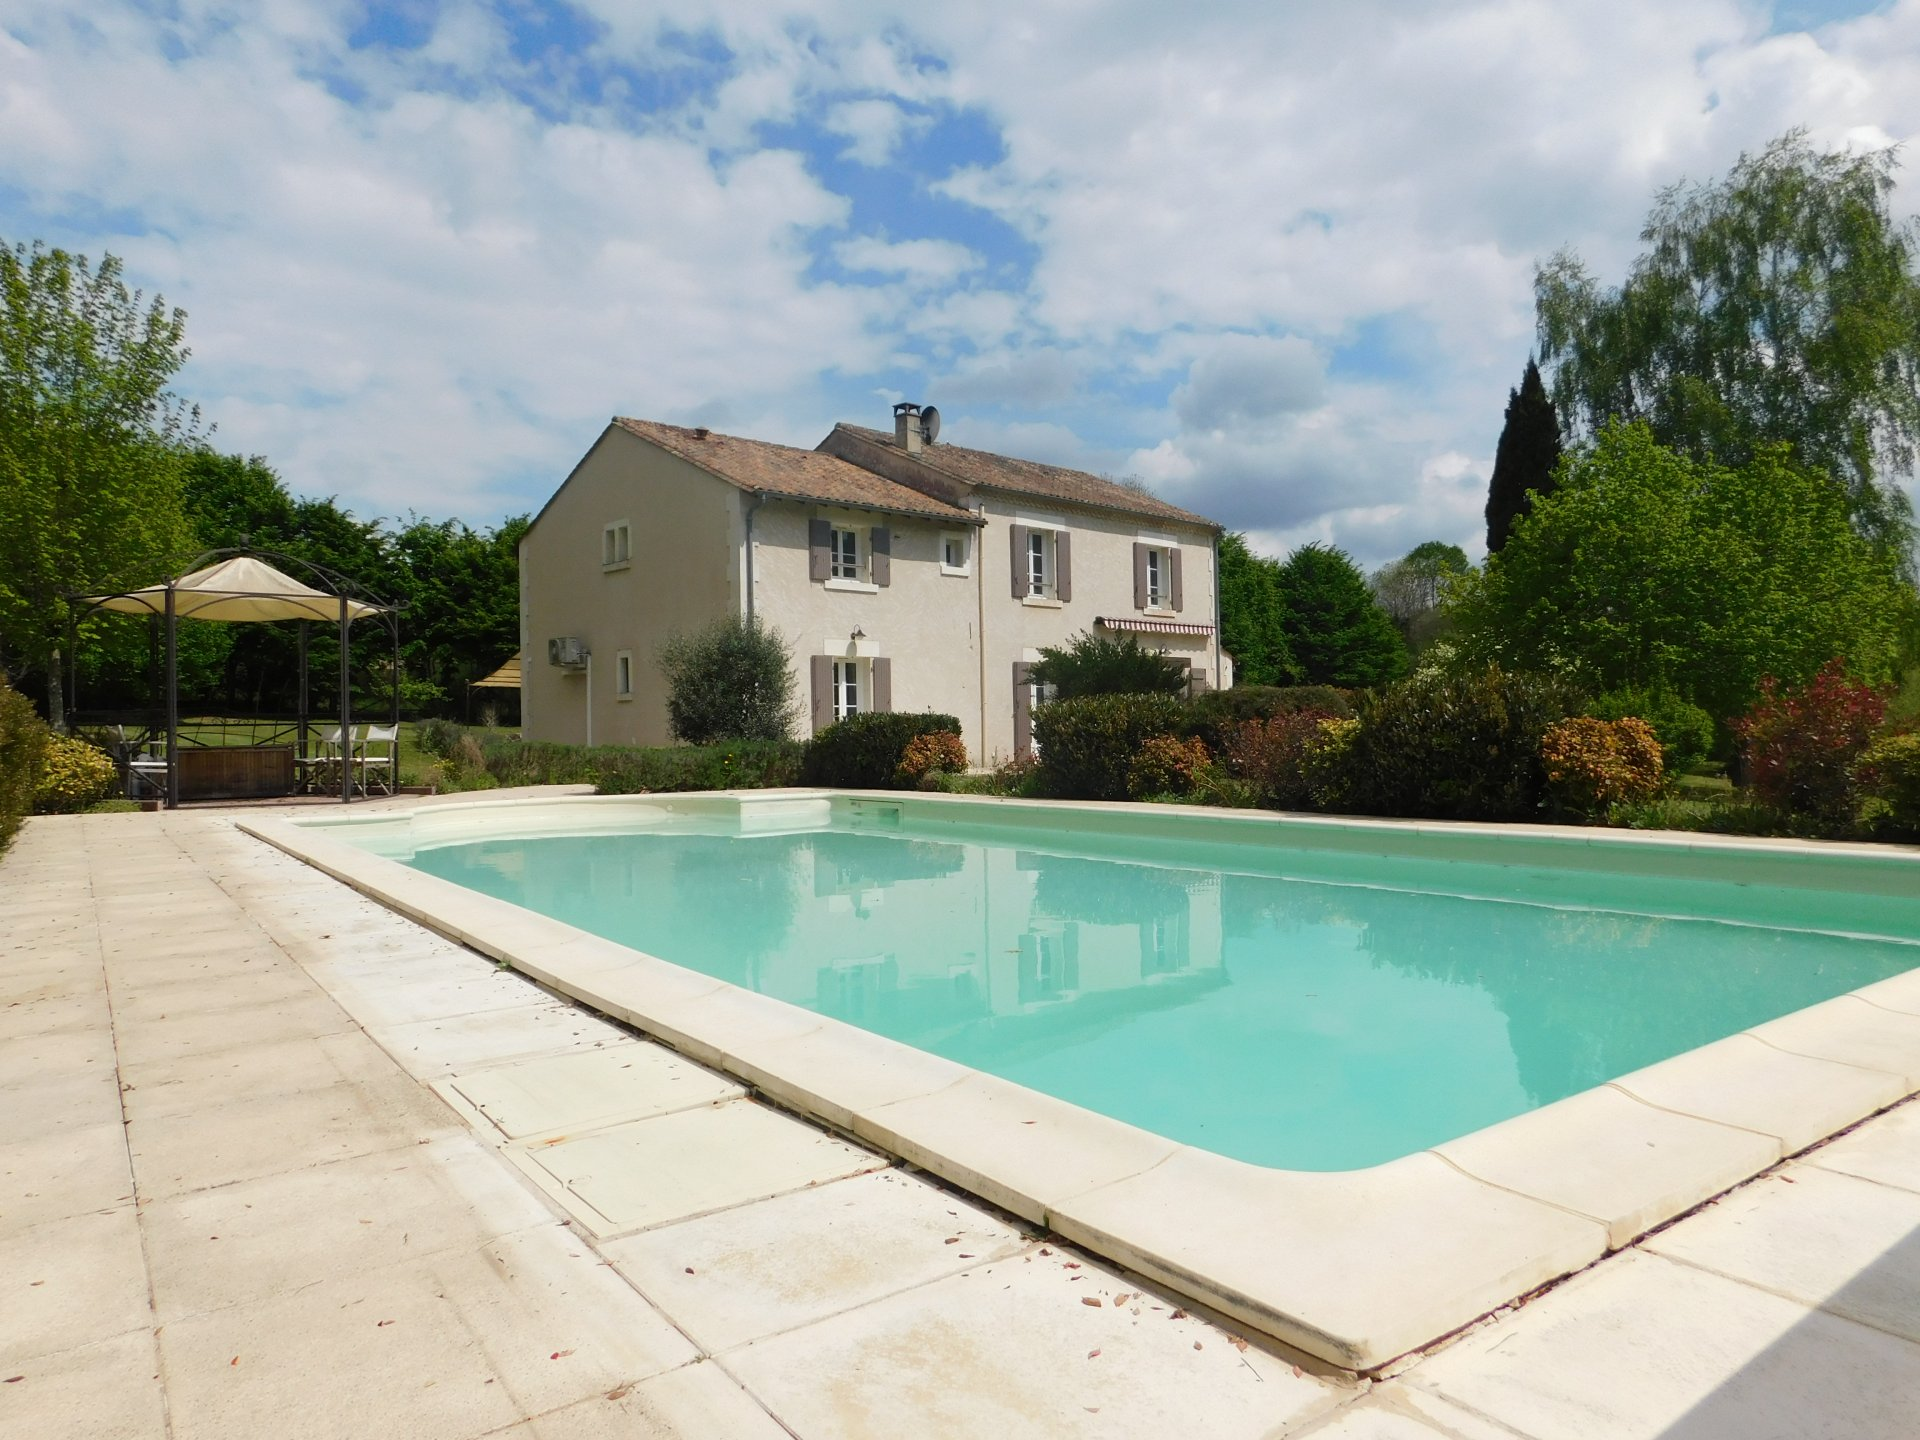 Superb house in ideal location on one hectare of land.